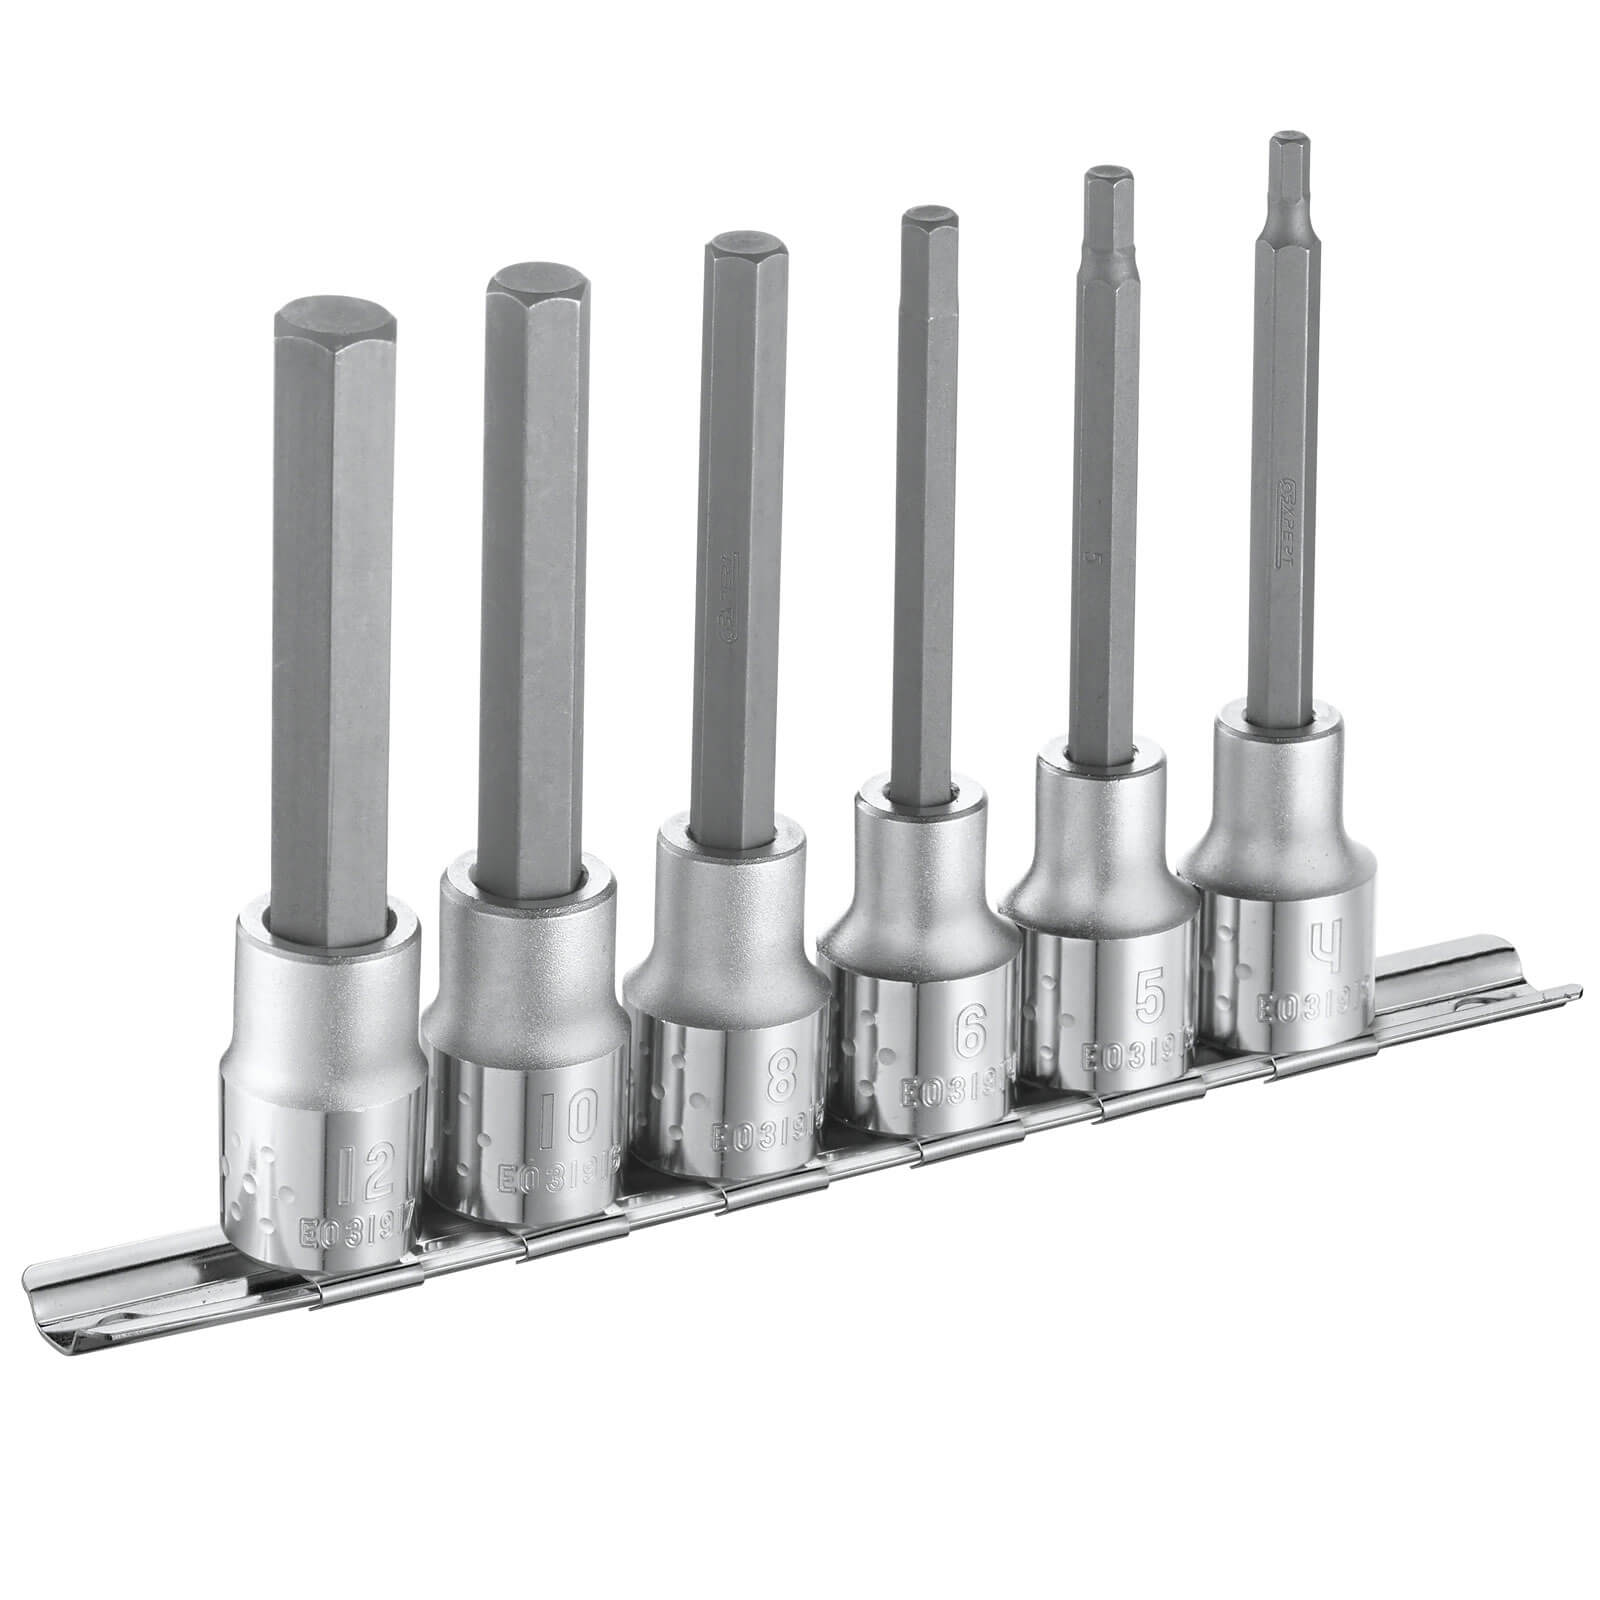 "Image of Britool Expert 6 Piece 1/2"" Drive Long Reach Hexagon Bit Set 1/2"""